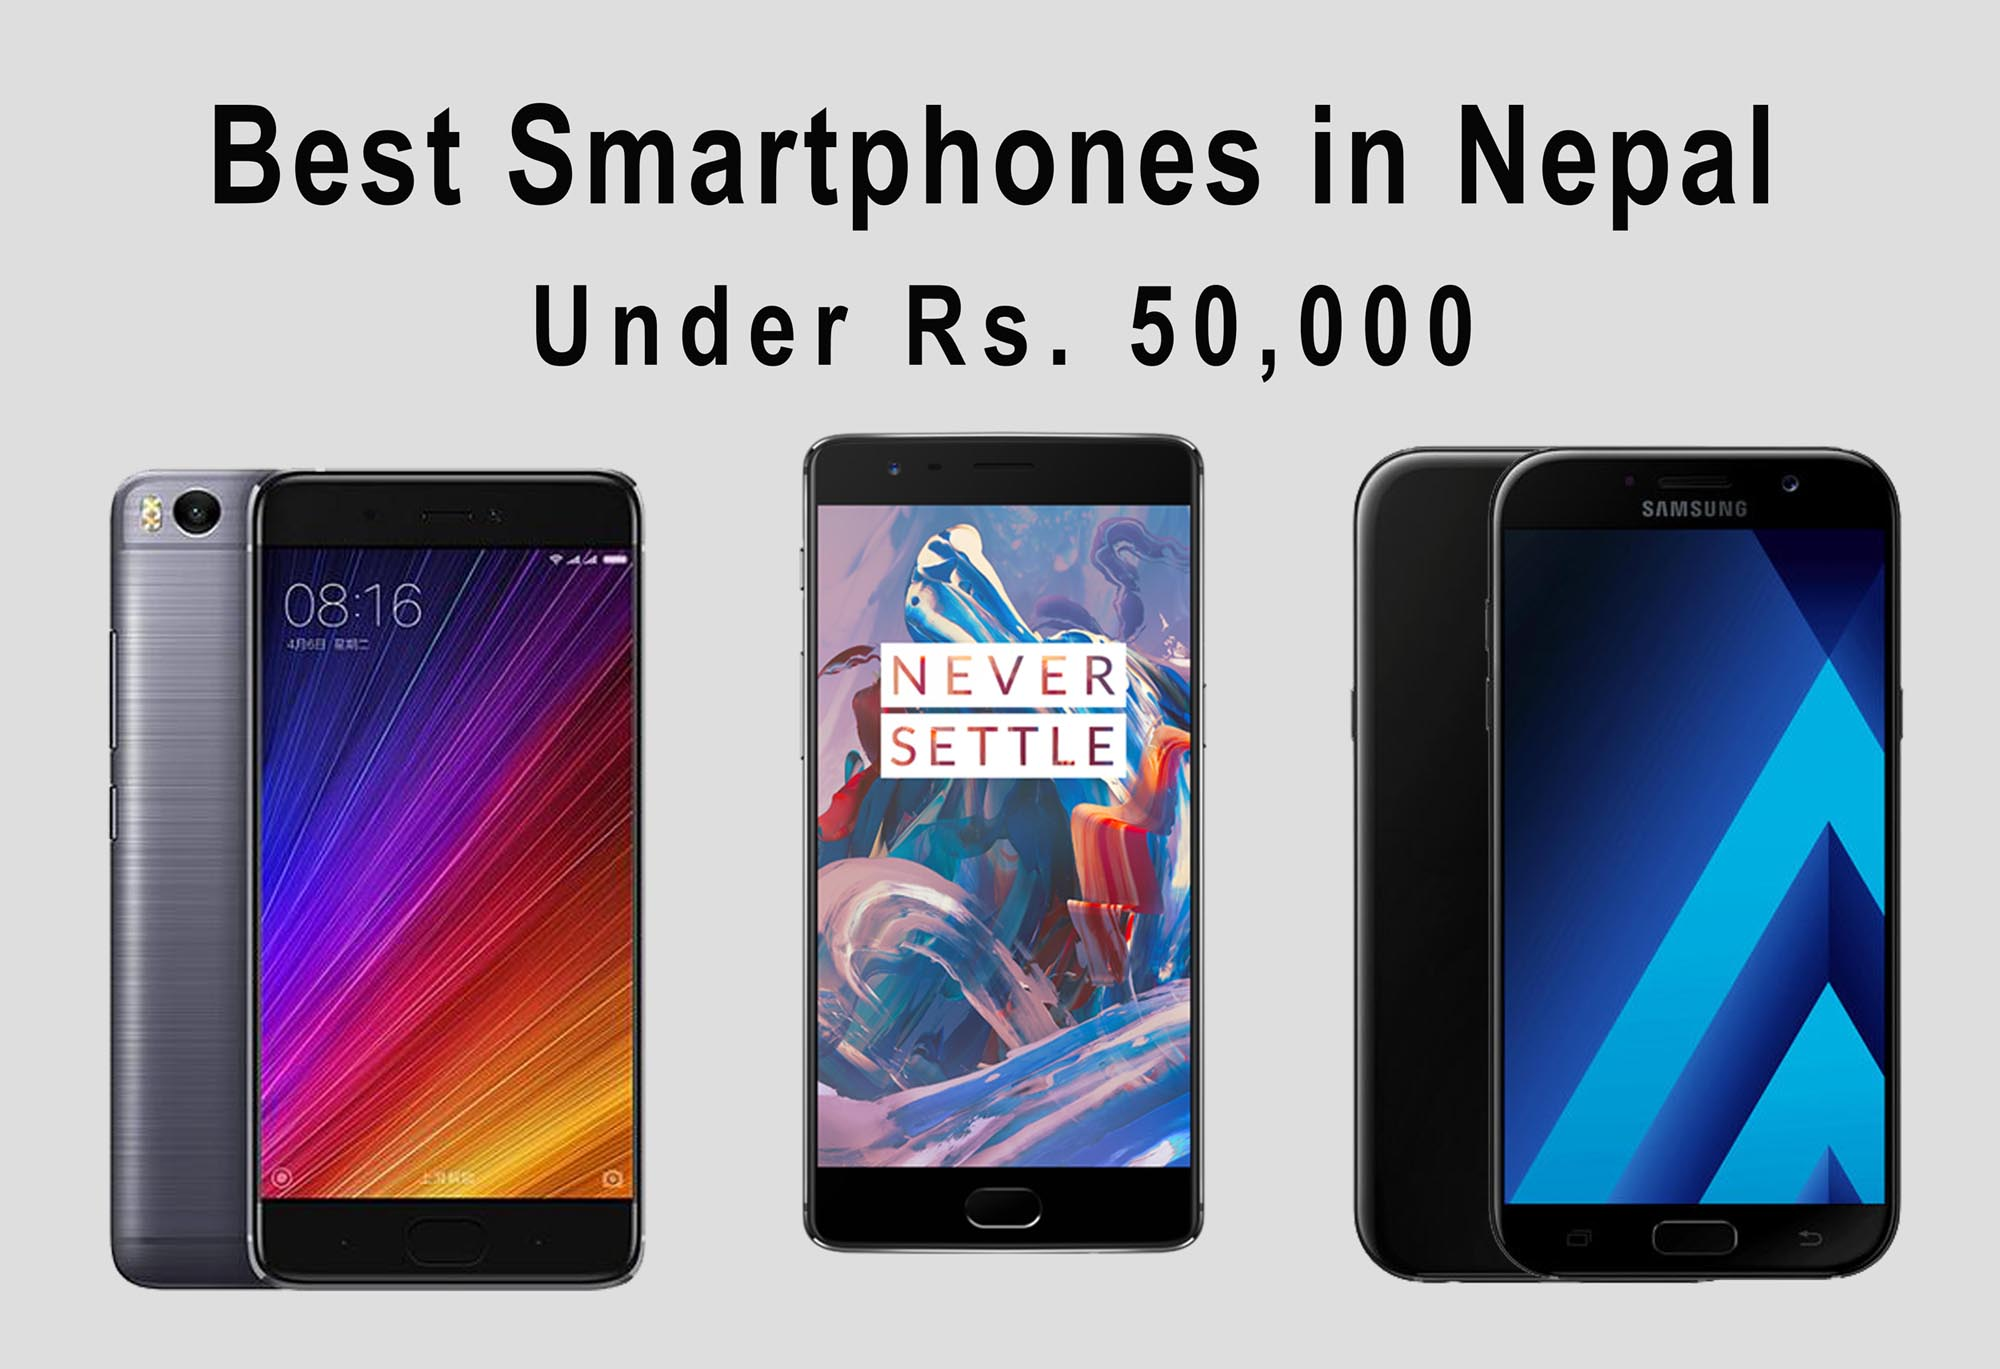 smartphone under rs. 50,000 in nepal